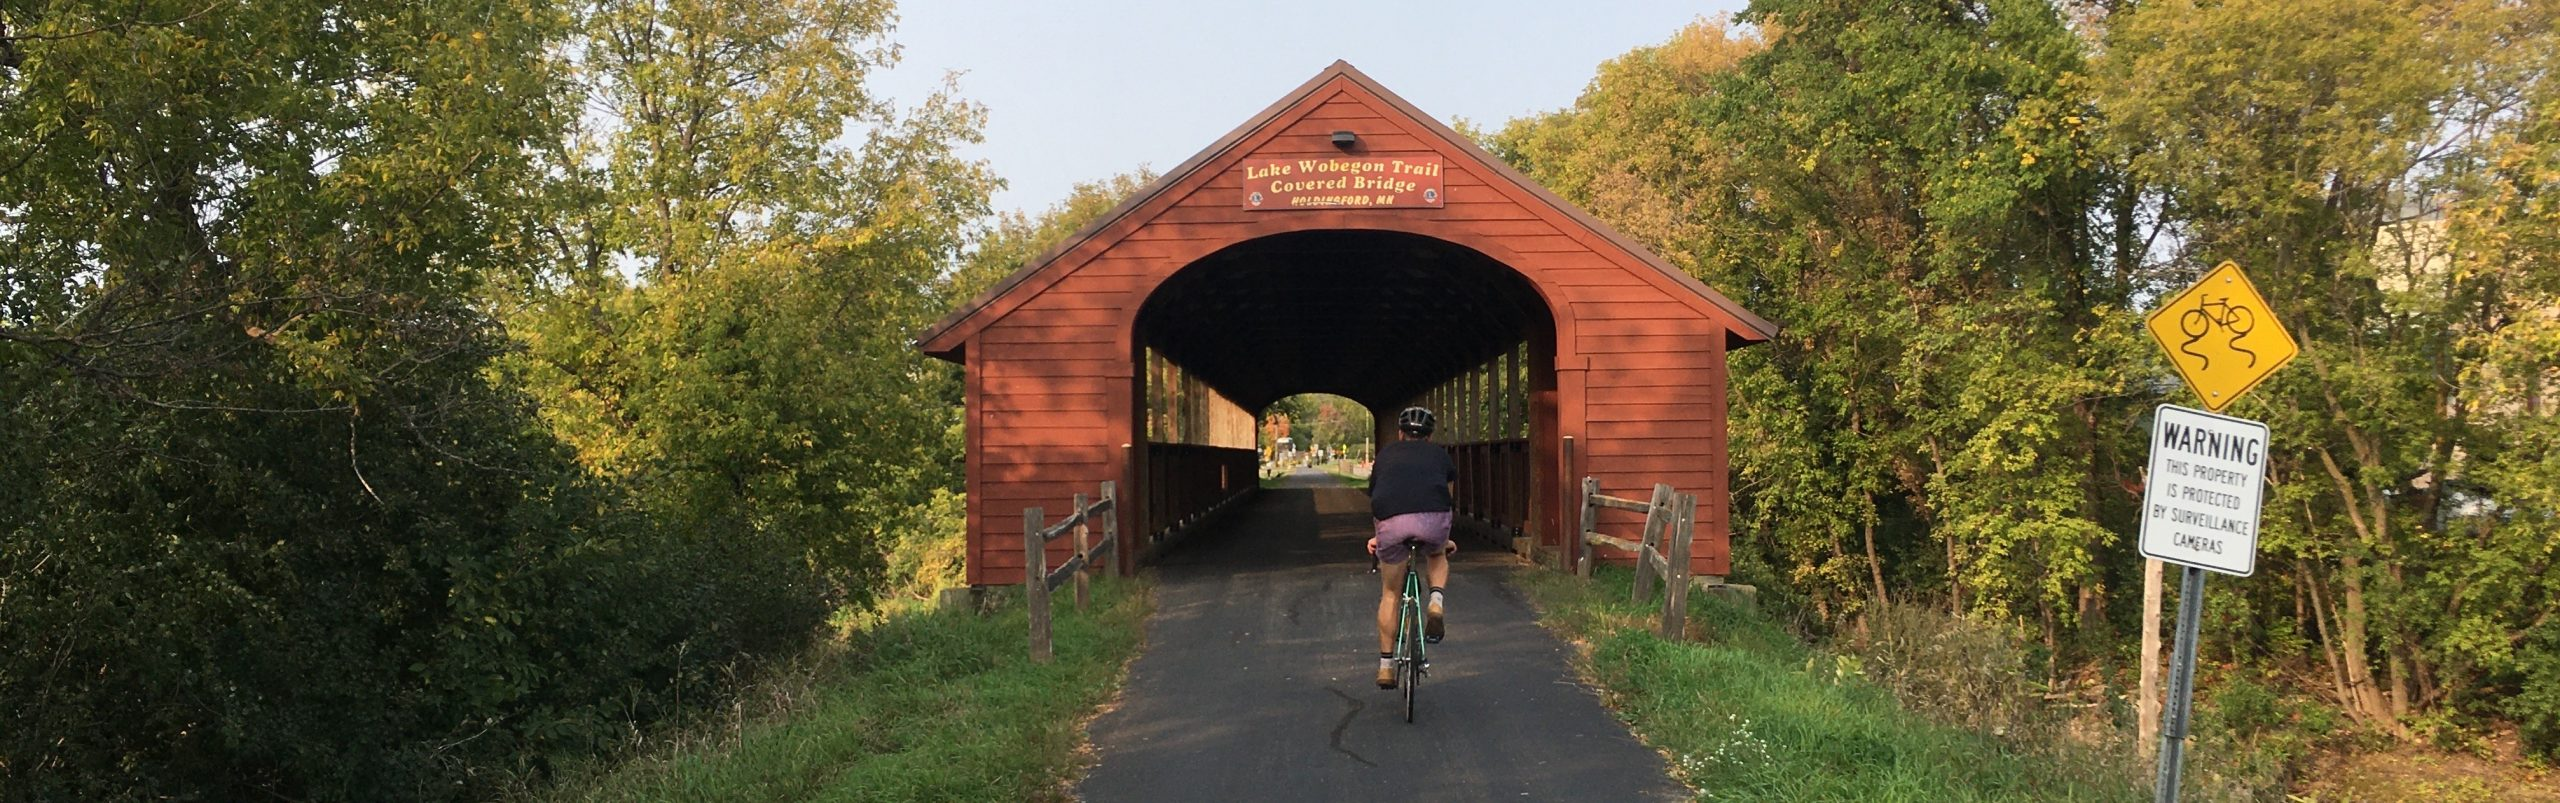 MinneCulture | Art in Motion Brings Artwork, Bands, and Biking to the Lake Wobegon Trail